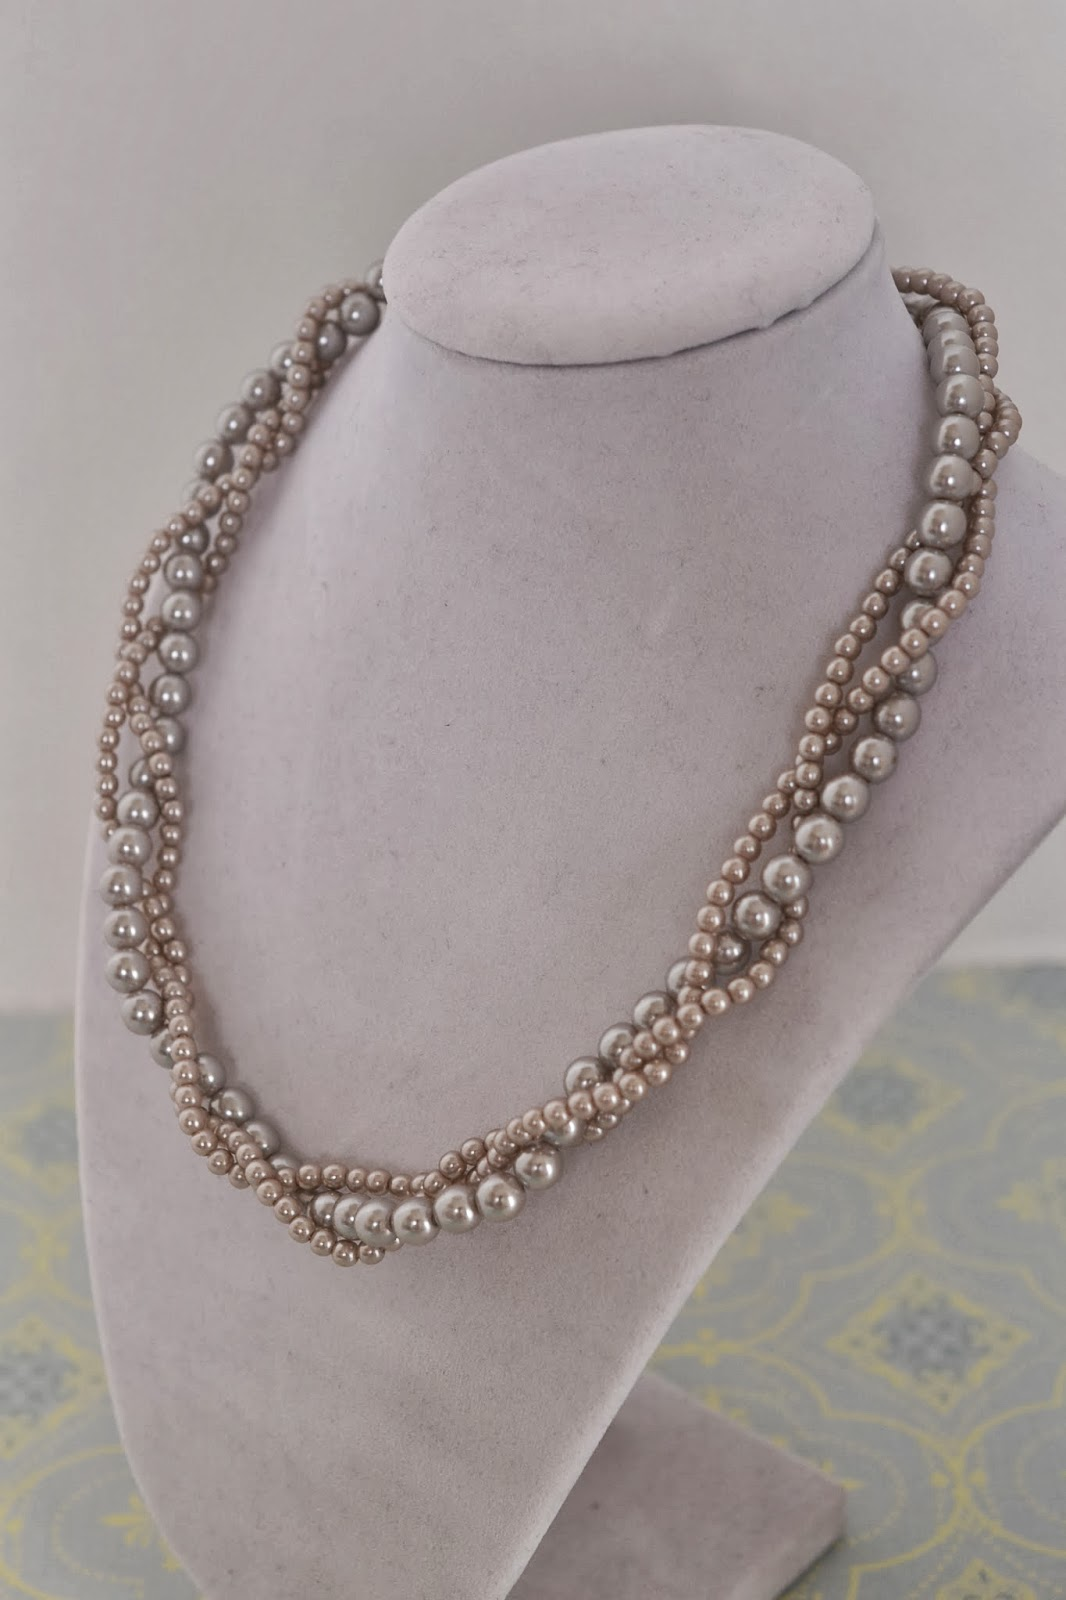 jewelry ideas pinterest pearl necklace designs necklace designs